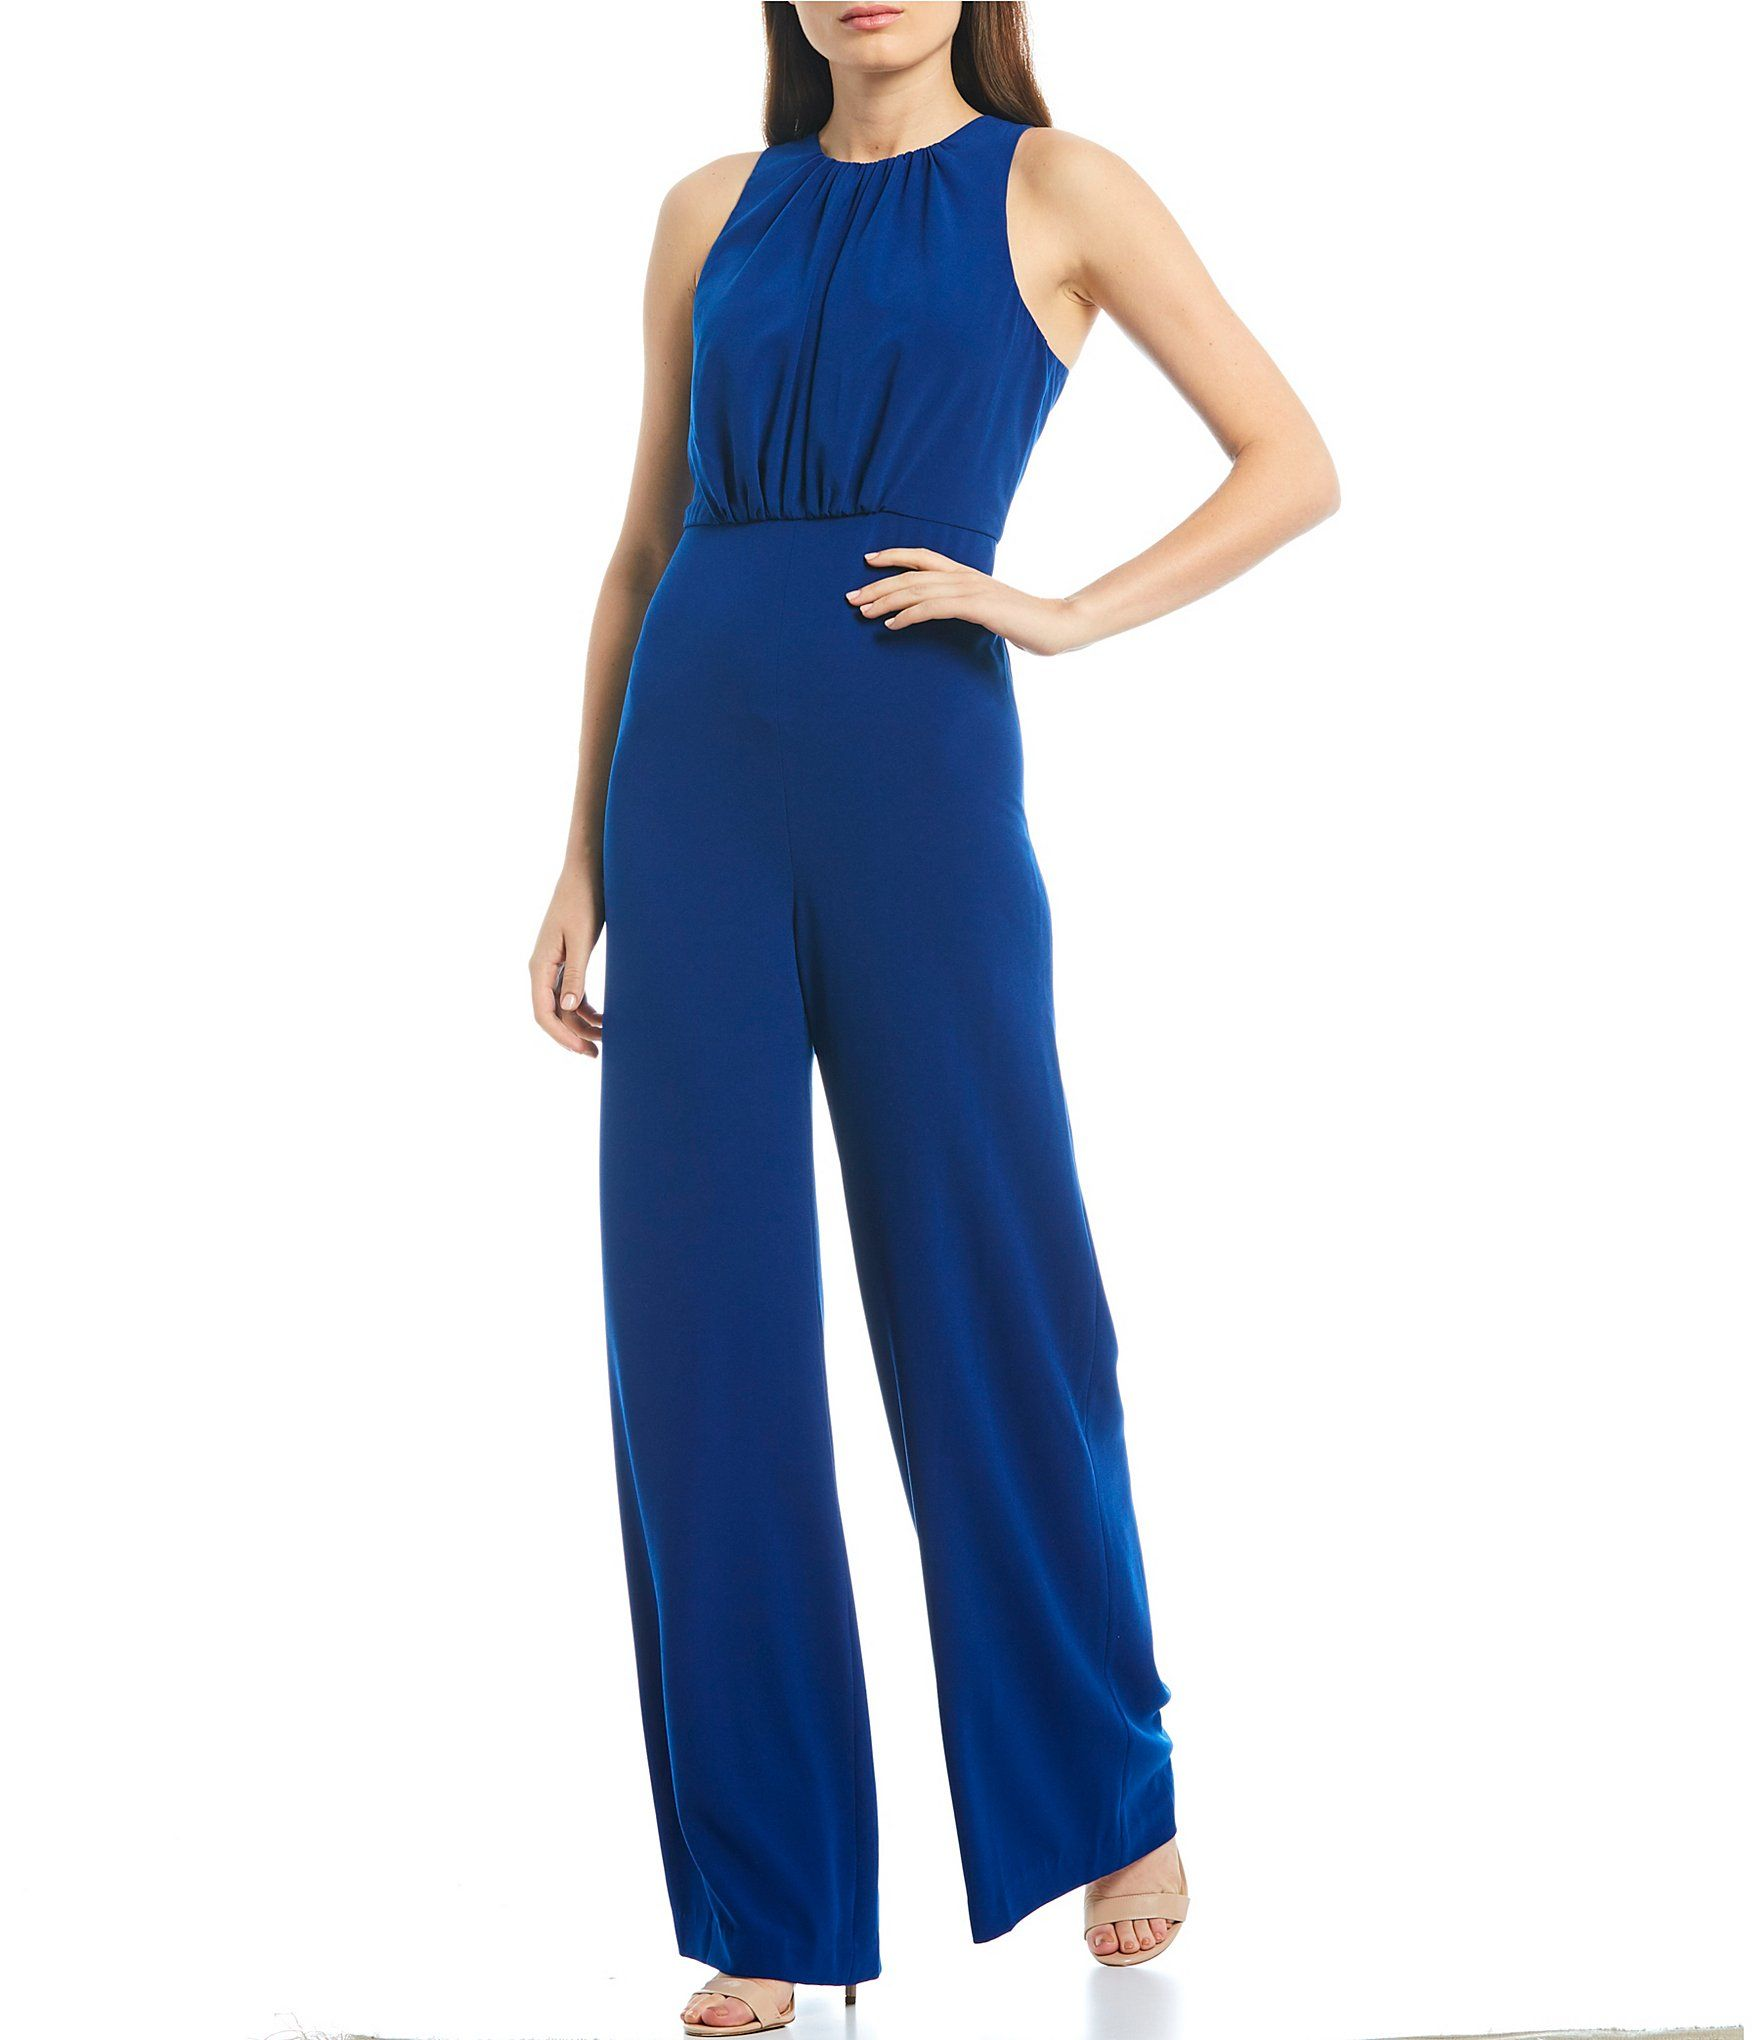 Halston Heritage Crepe Ruched Bodice Wide Leg Jumpsuit - Royal Blue 14